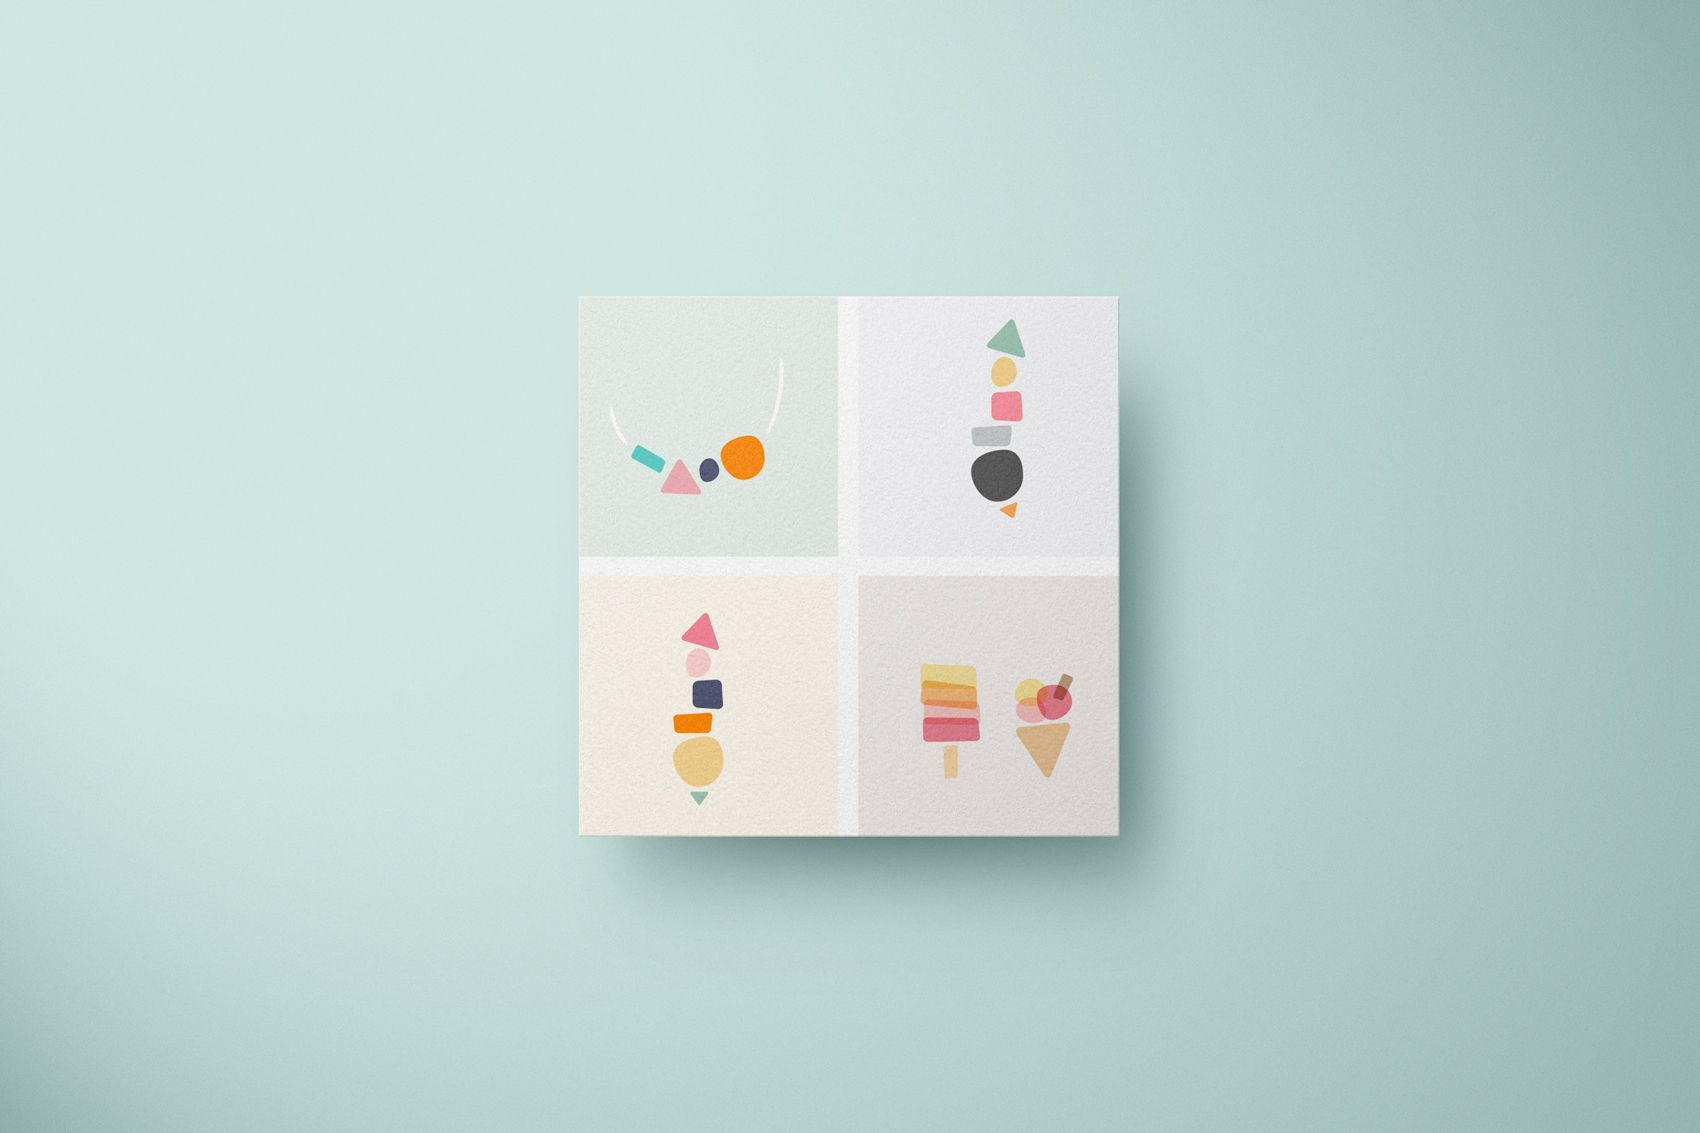 minimalistic illustrations